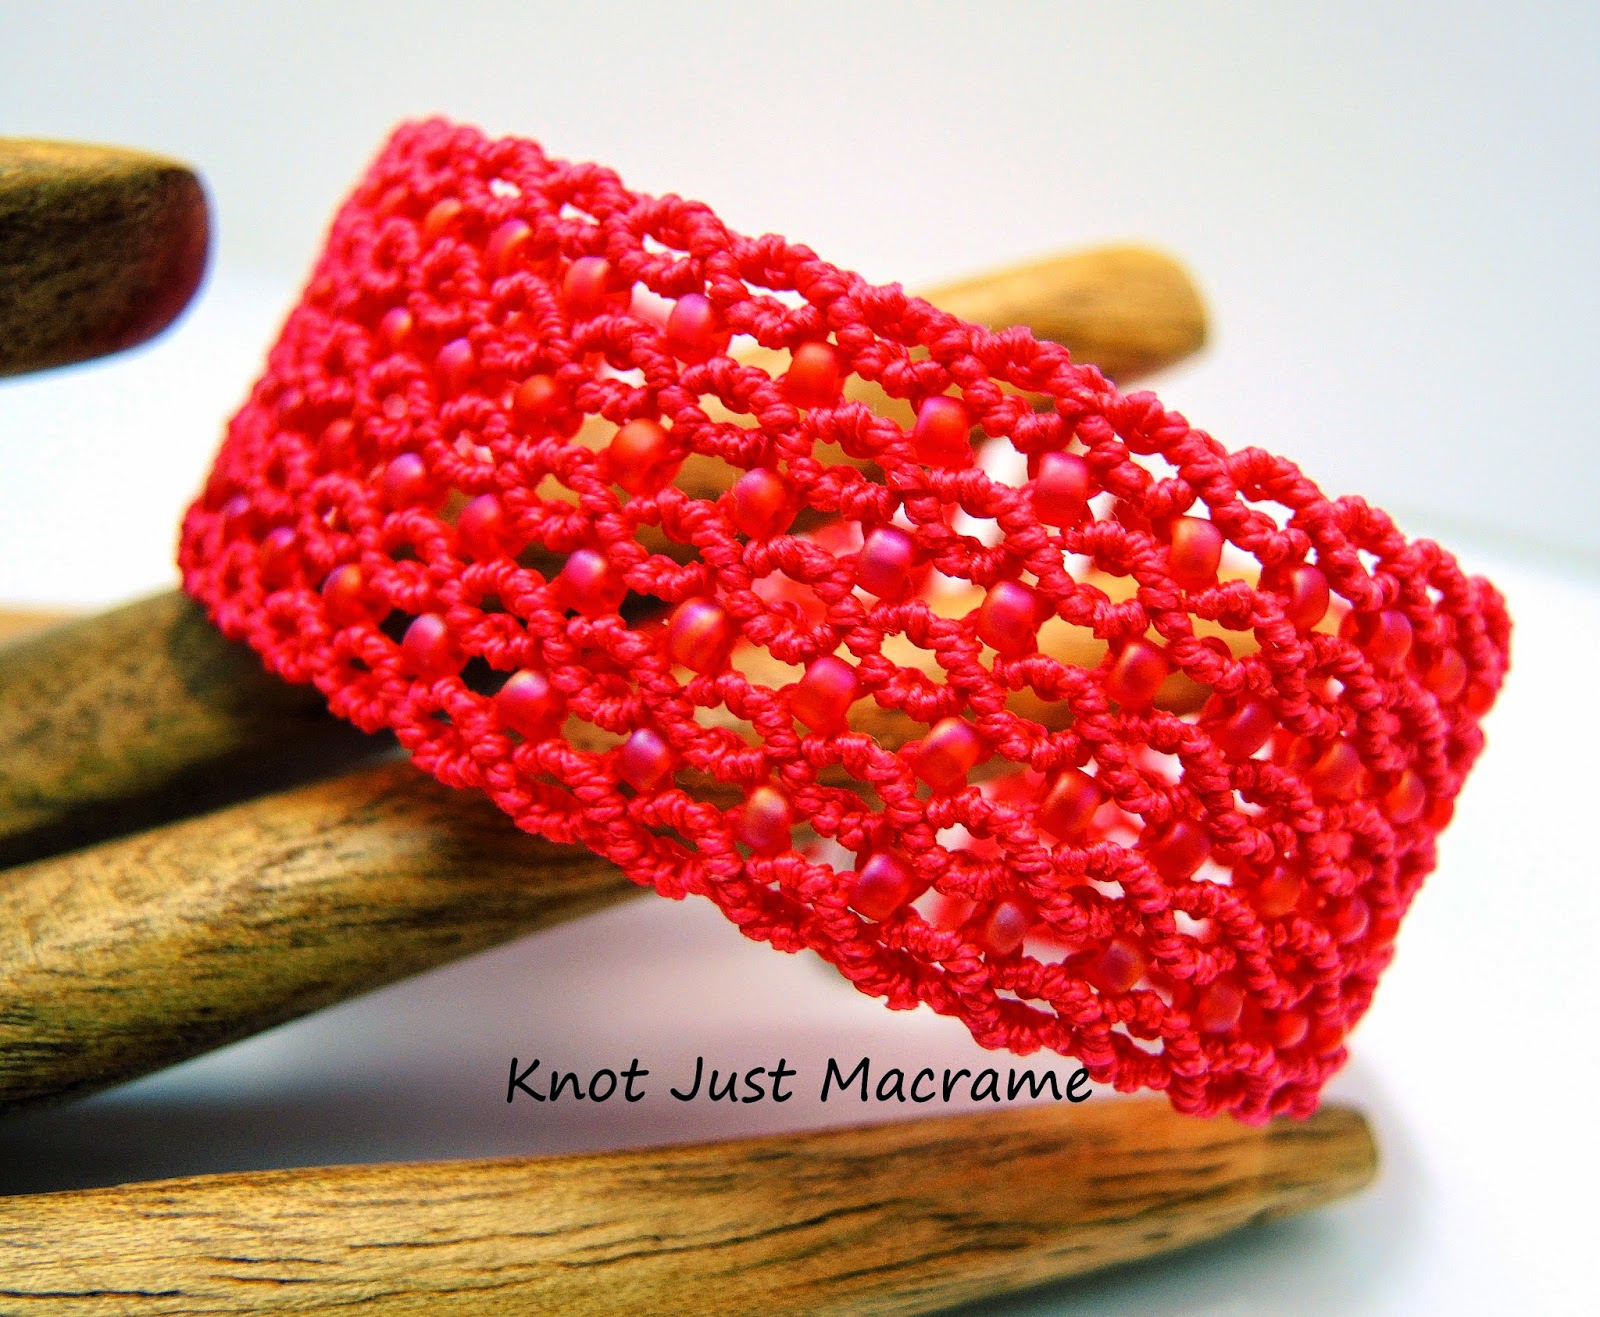 Micro macrame cuff bracelet in red by Sherri Stokey.